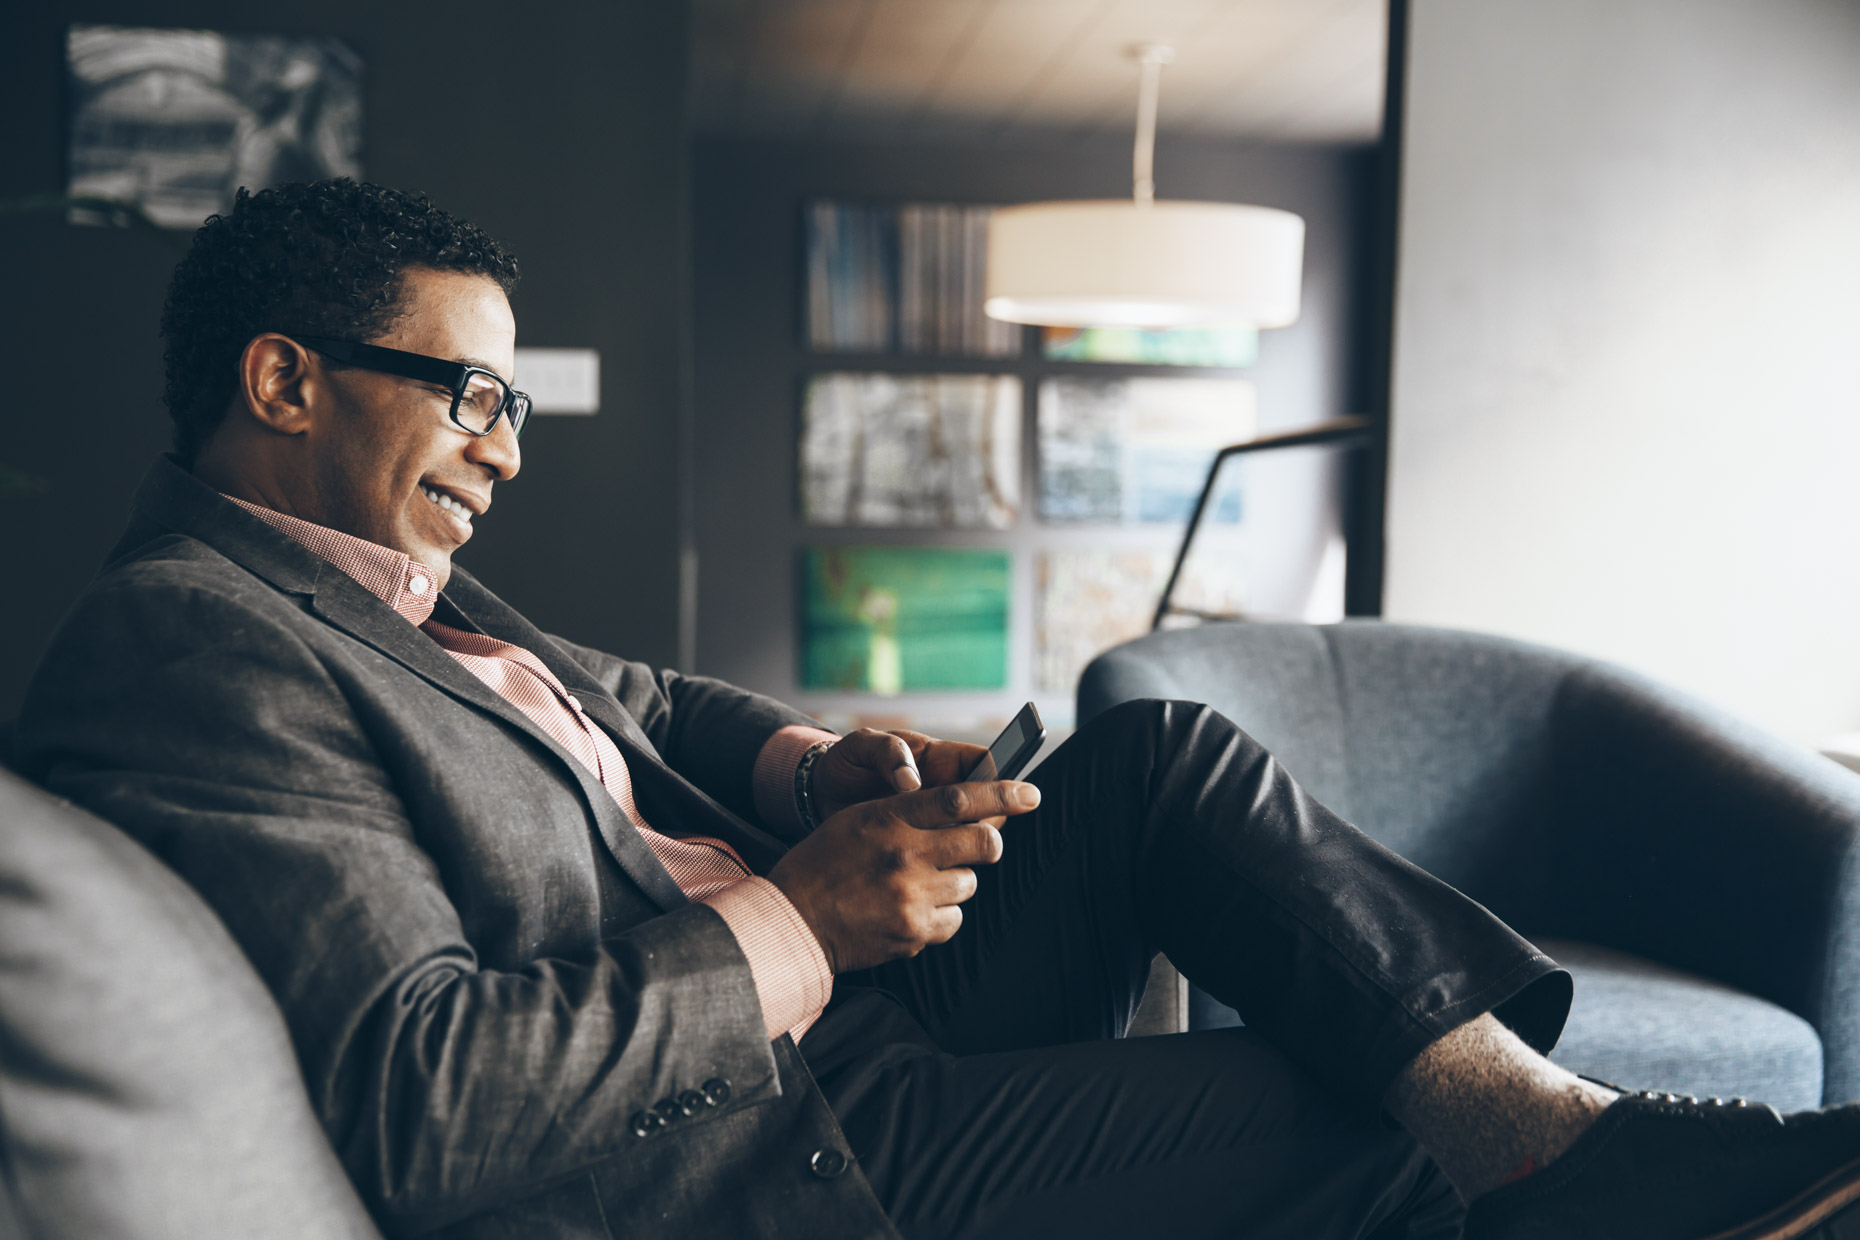 Portrait of smiling business man sitting and texting on phone